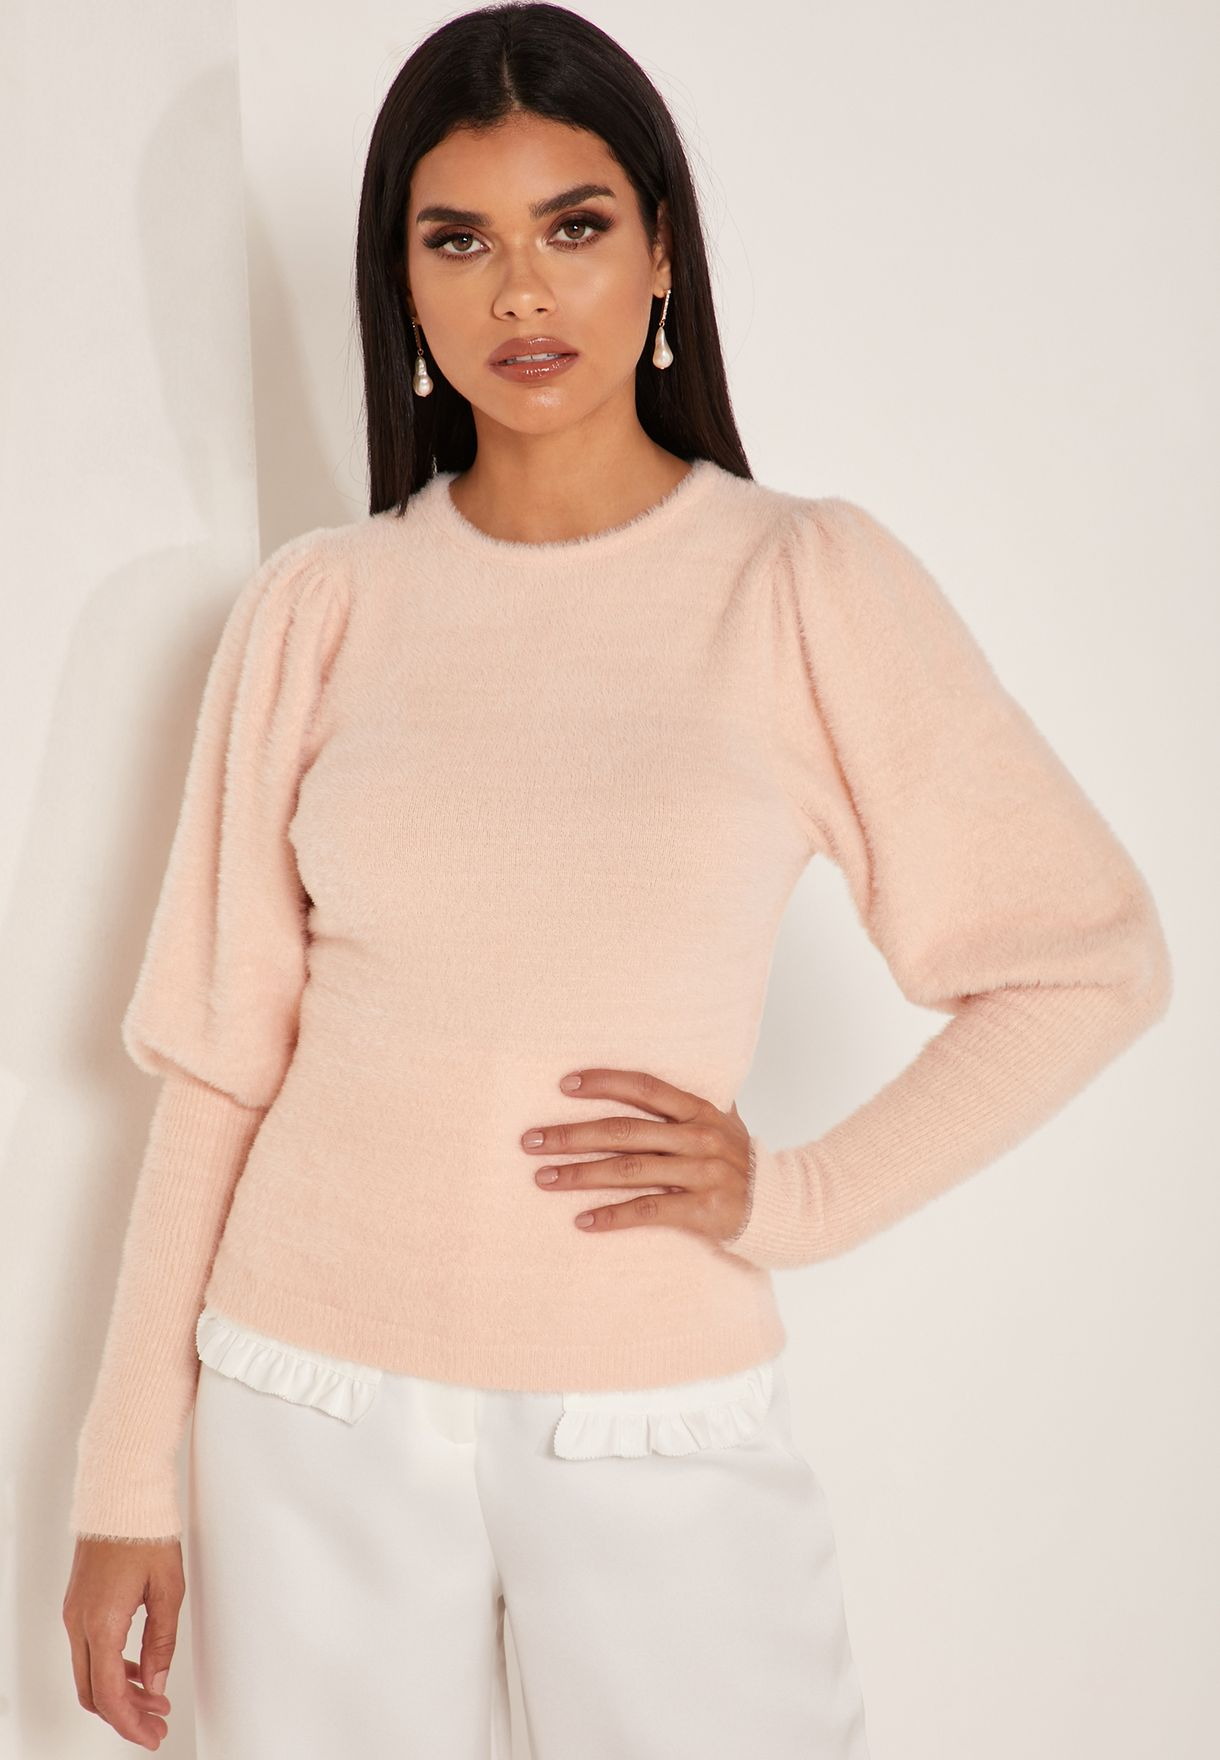 Sleeve Detail Sweater